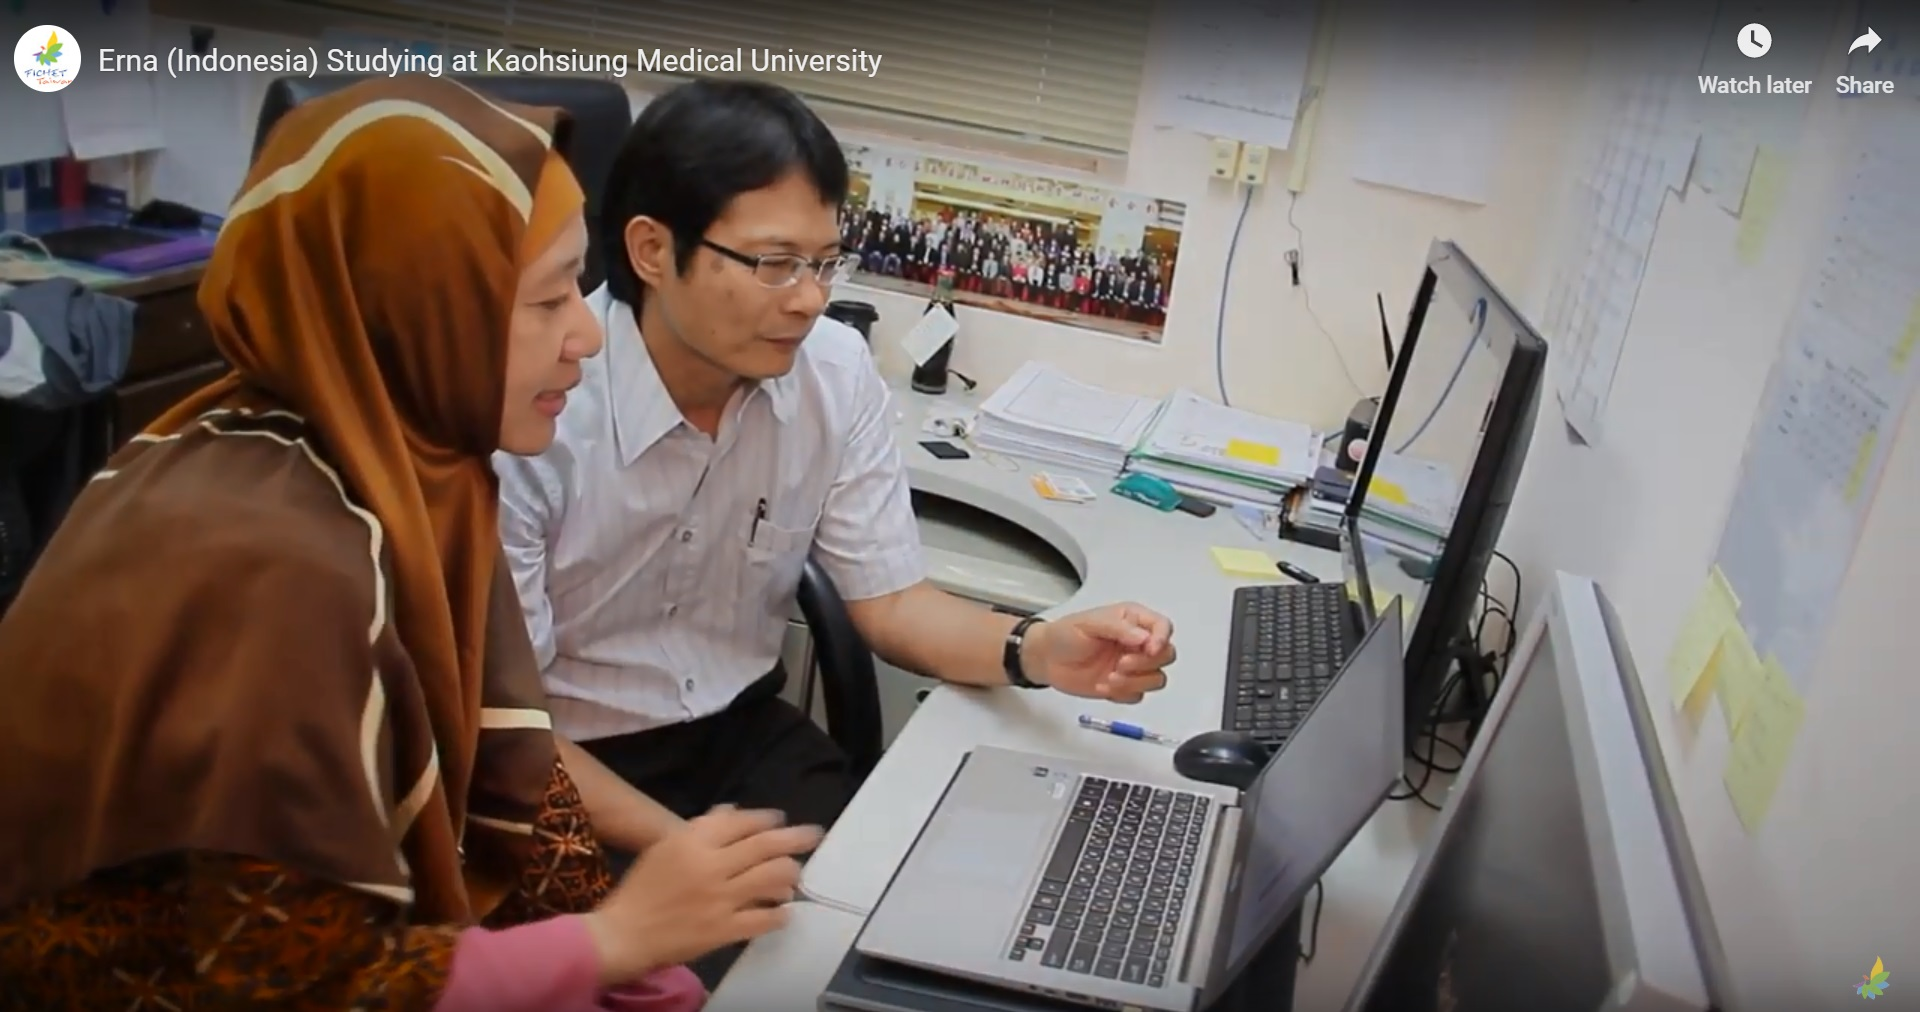 [Video] Erna (Indonesian) Studying at Kaohsiung Medical University